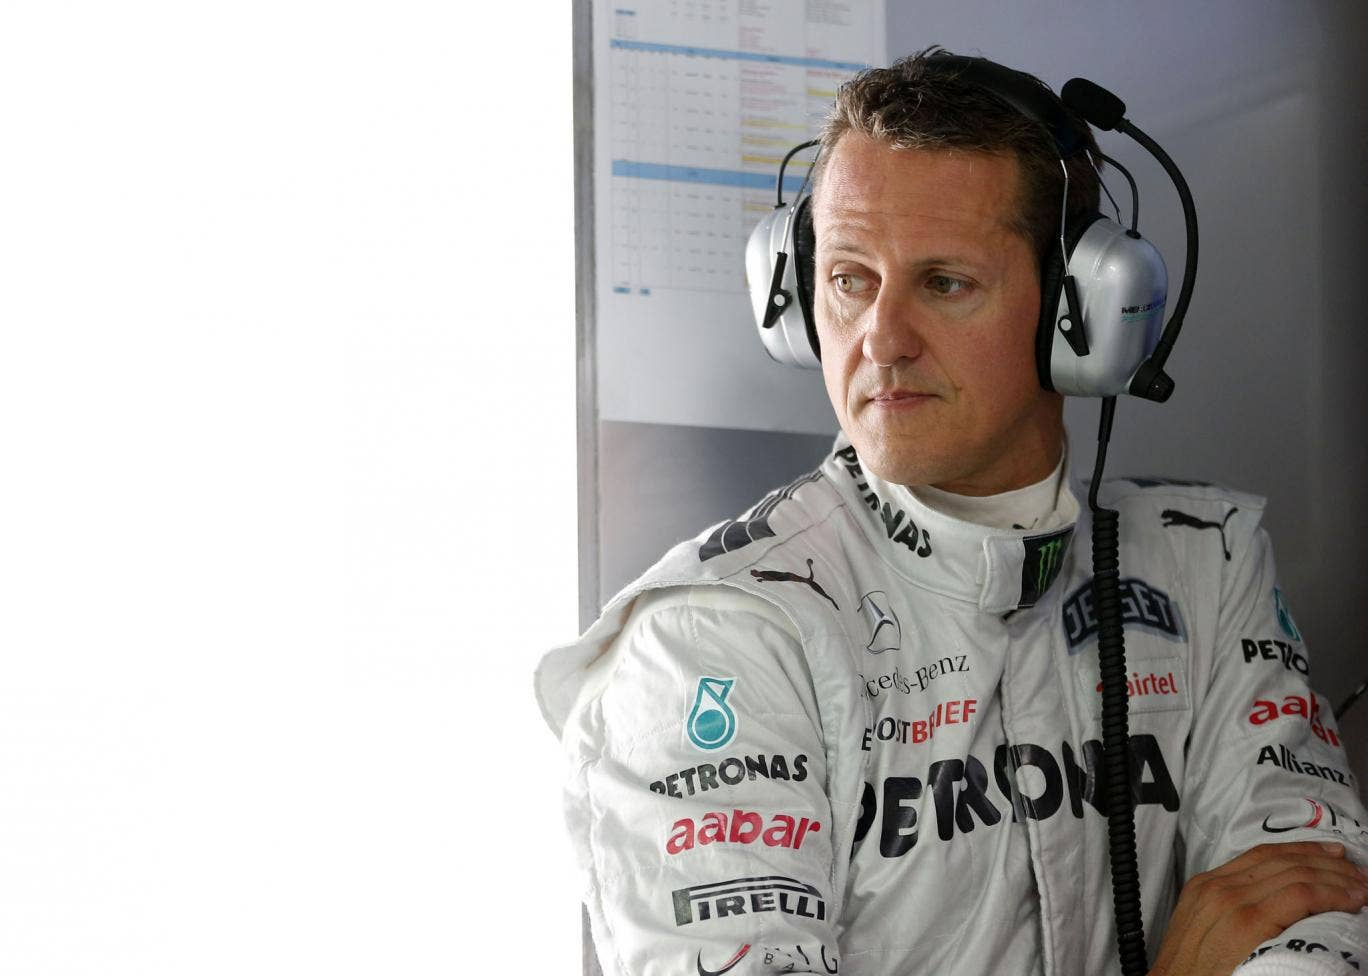 Michael Schumacher dead at 44: From humble beginnings to the greatest racing driver in history